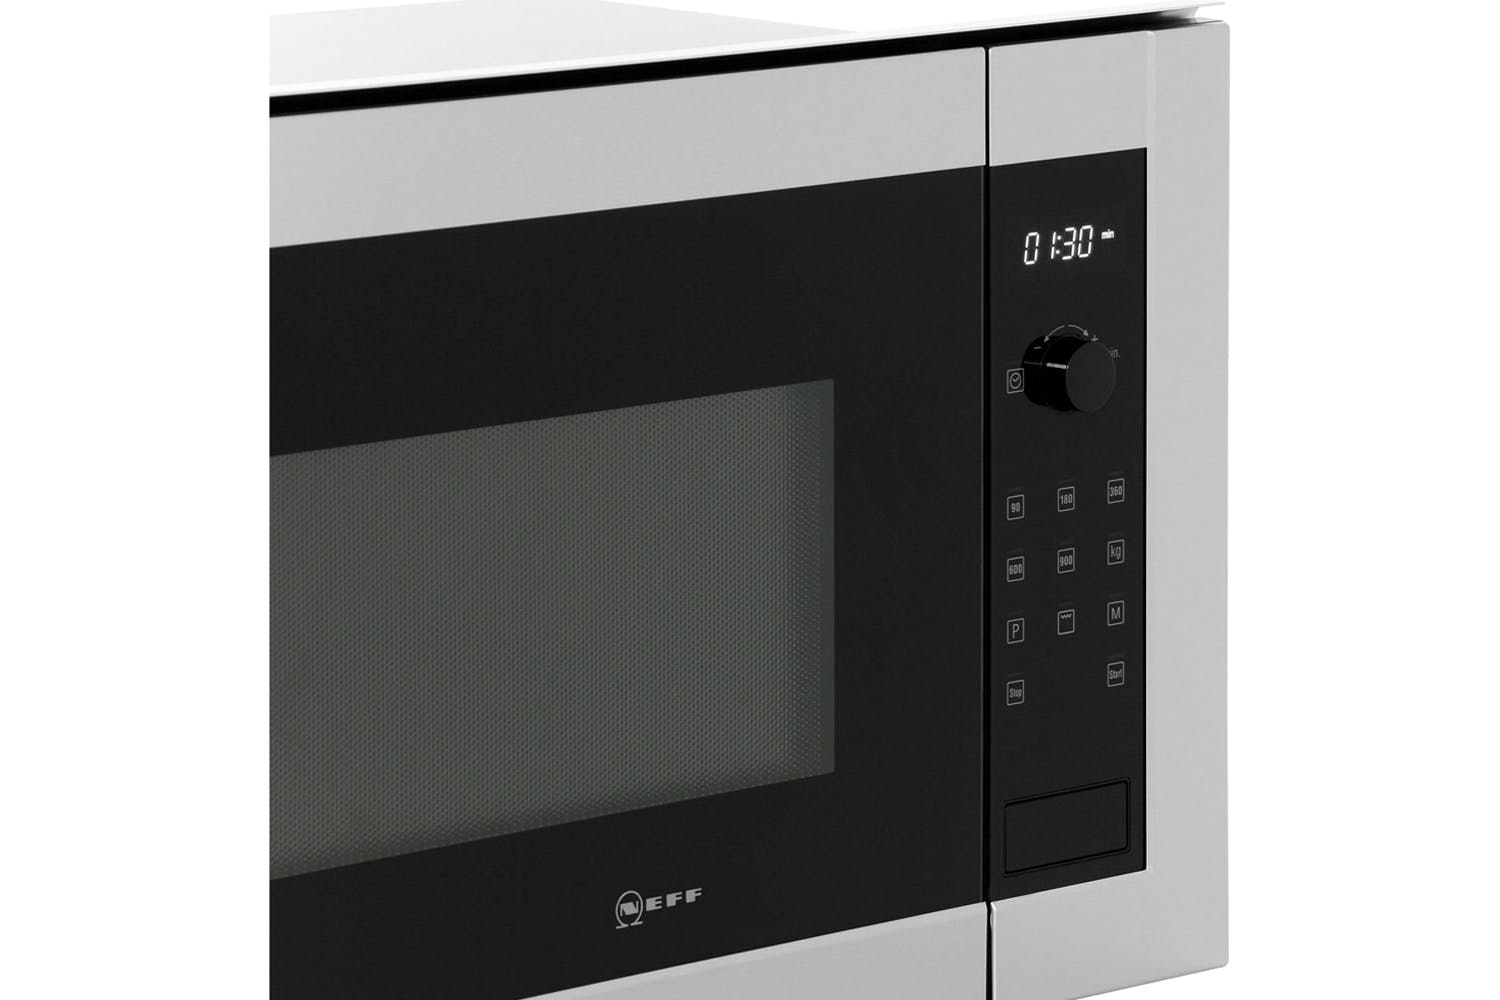 Neff 25L 900W Built In Microwave | H12GE60N0G | Stainless Steel & Black